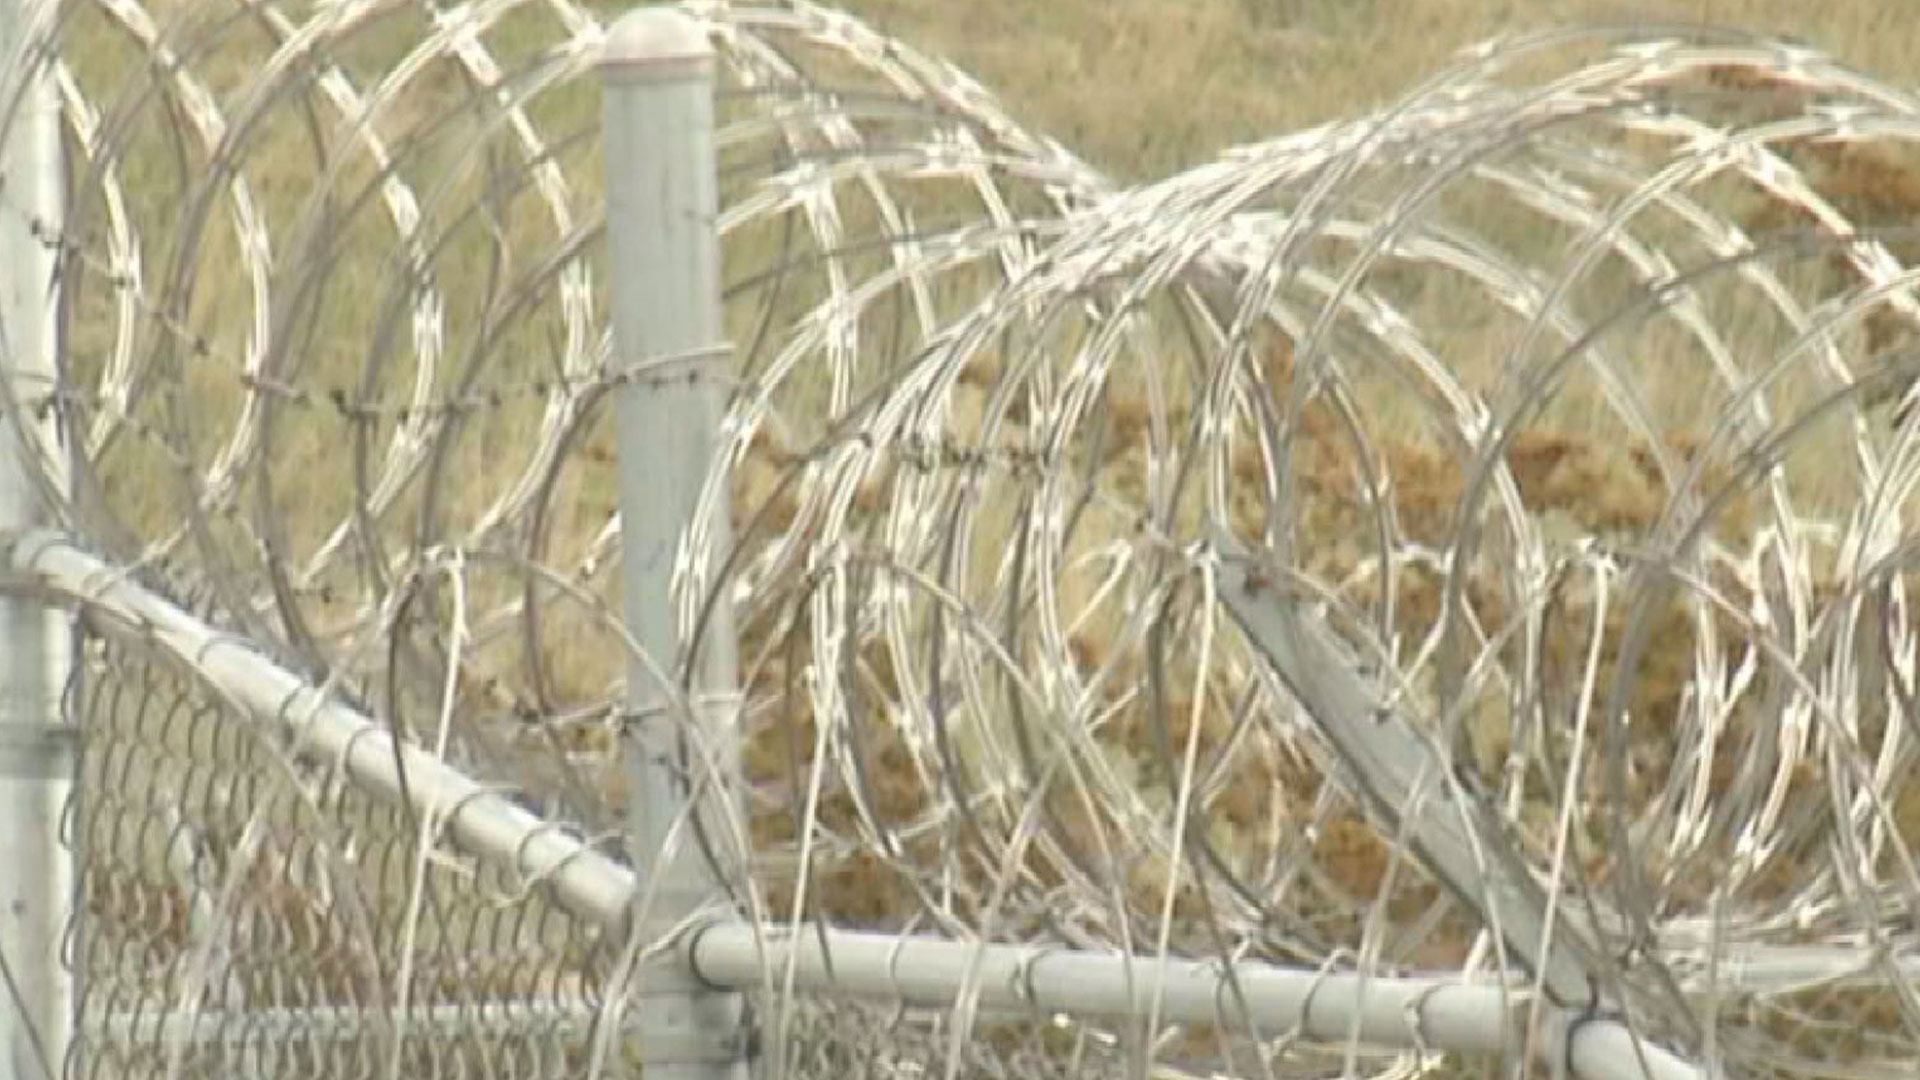 KELO Jail Prison Barbed Wire Fence